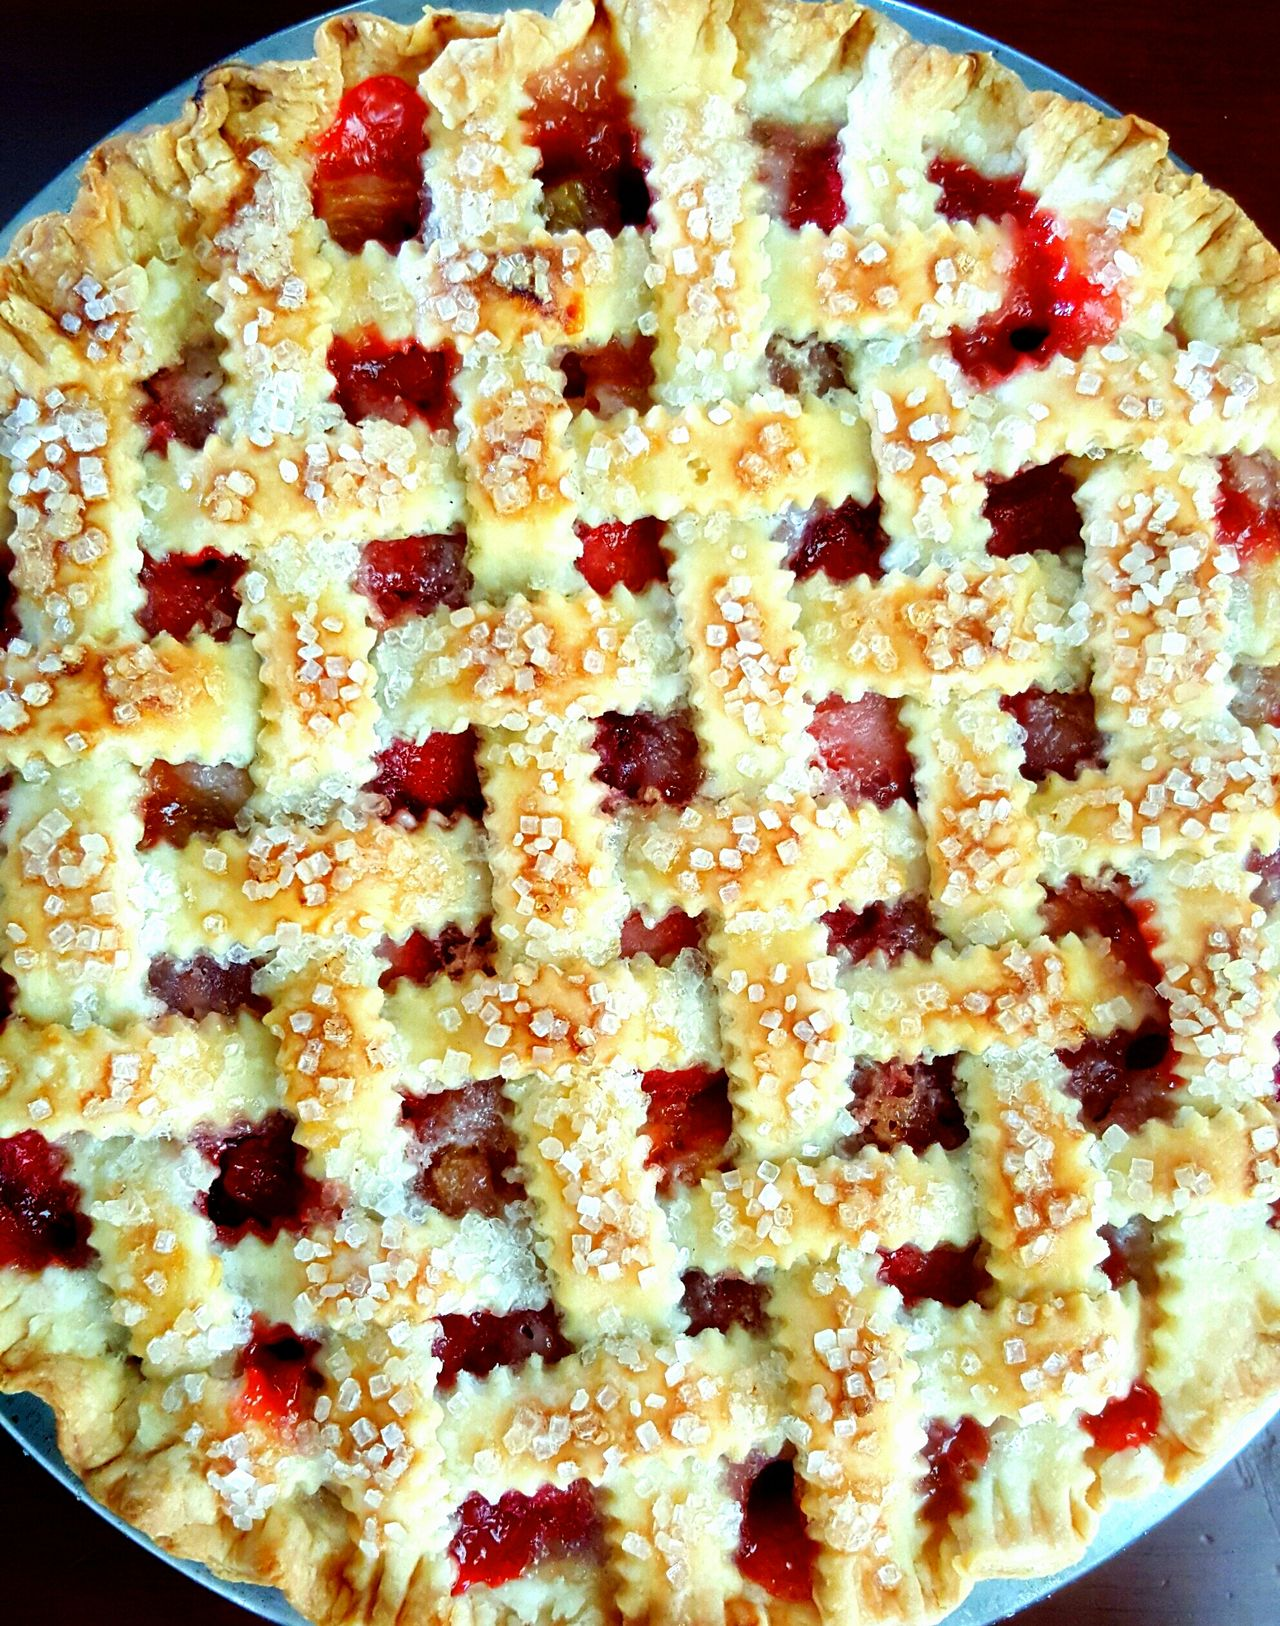 ❤Home made strawberry rhubarb pie ❤ Strawberry Rhubarb Food And Drink Indoors  Food Close-up Indulgence Freshness Ready-to-eat Homemade Temptation Meal Snack Appetizer Extreme Close-up Dessert Culture Circle Pie